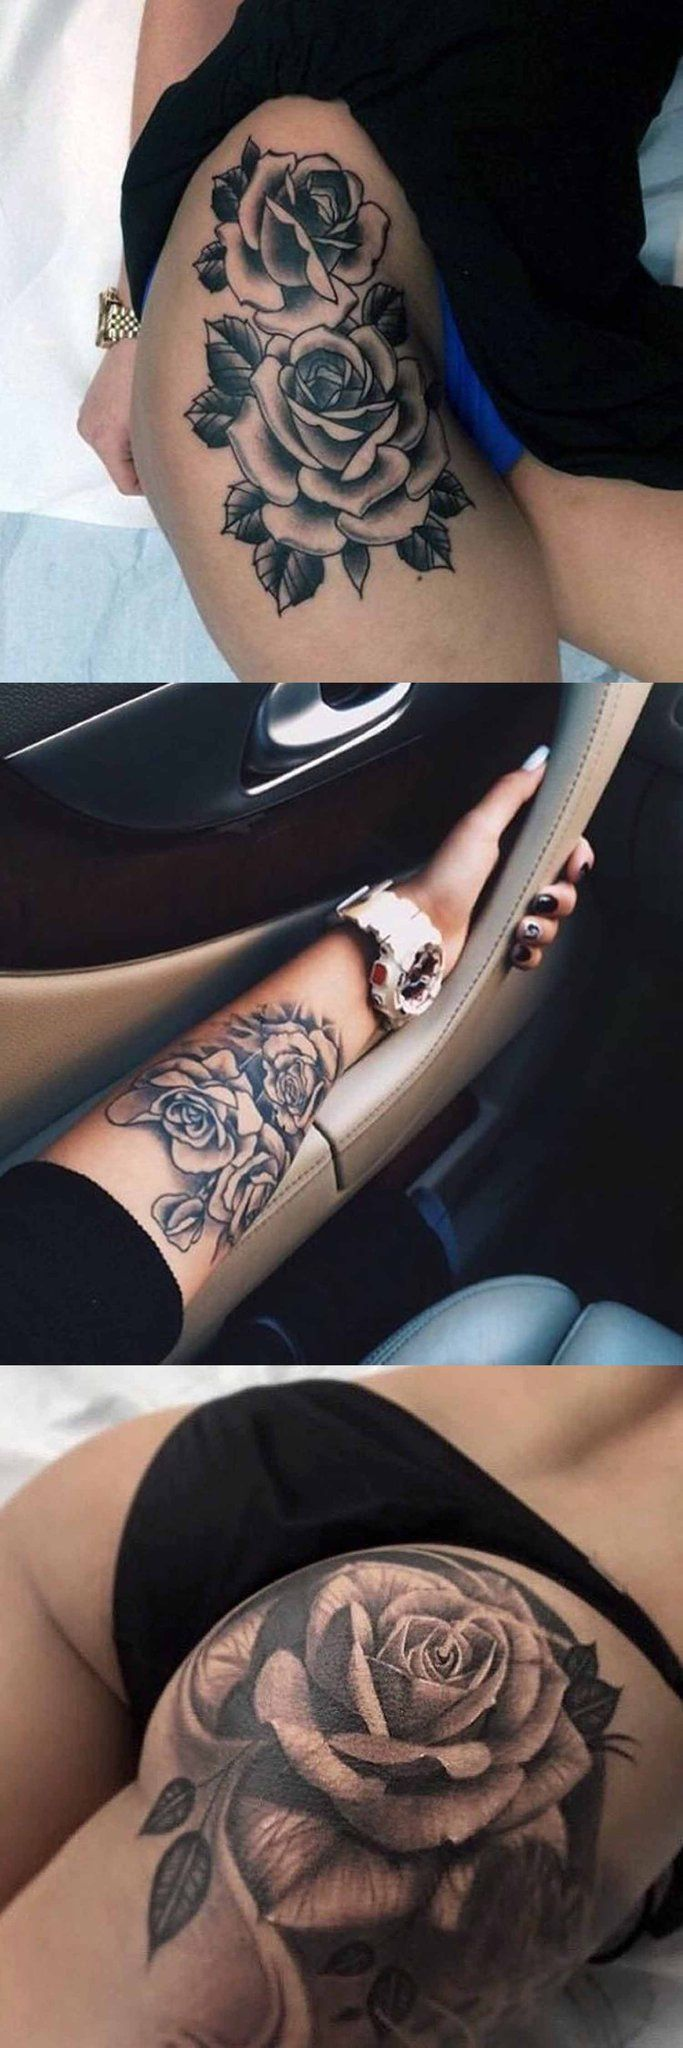 Realistic Black Rose Flower Floral Thigh Leg Arm Wrist Bum Tattoo Ideas for Women …, #flower #floral #handle # thigh